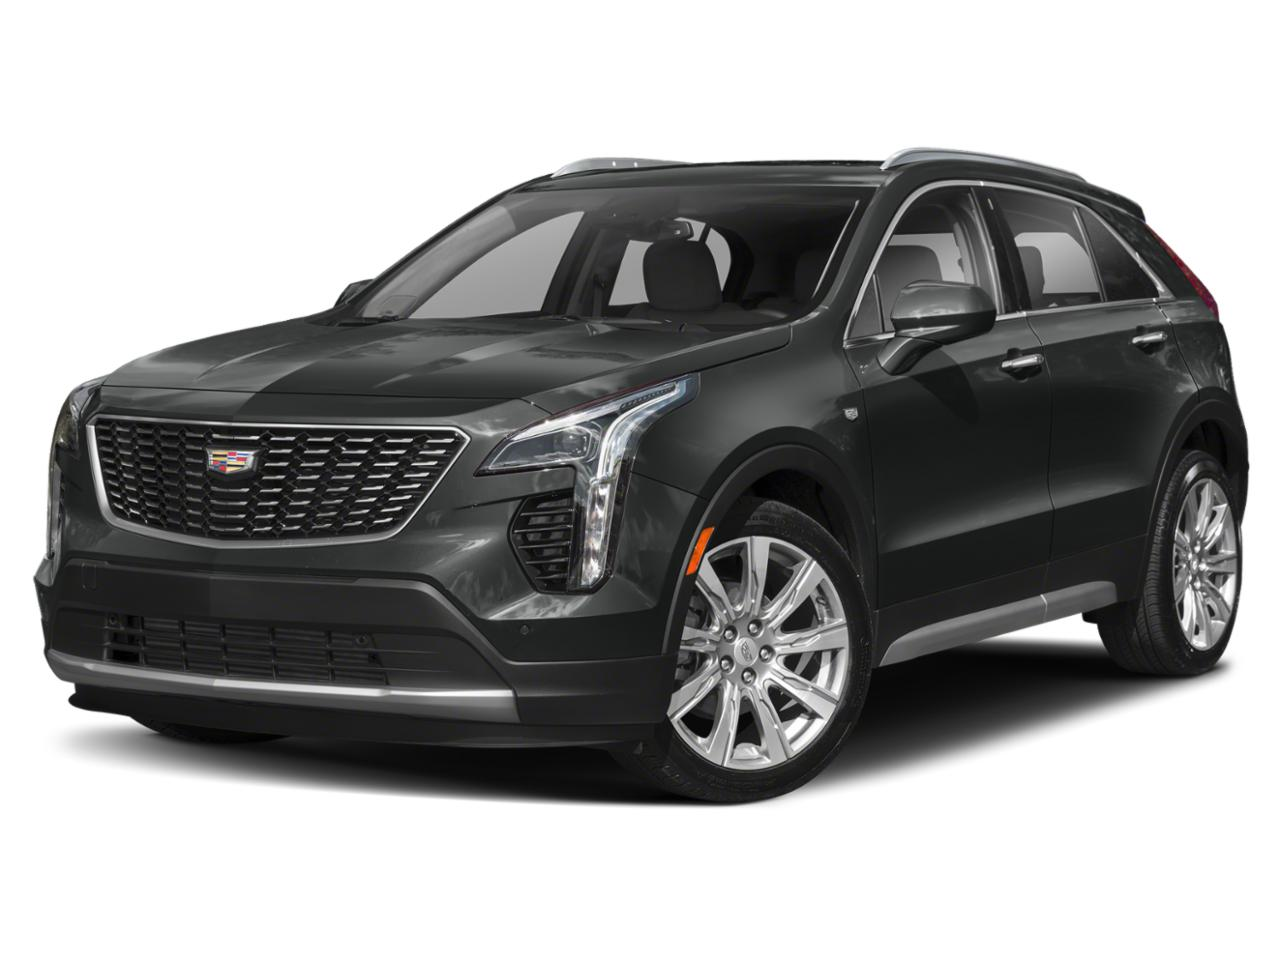 New       2021              Cadillac         XT4       Sport                In Transit See Details      Vehicle In Transit     This vehicle has been shipped from the assembly plant and will arrive in the near future. Please contact us for more details.